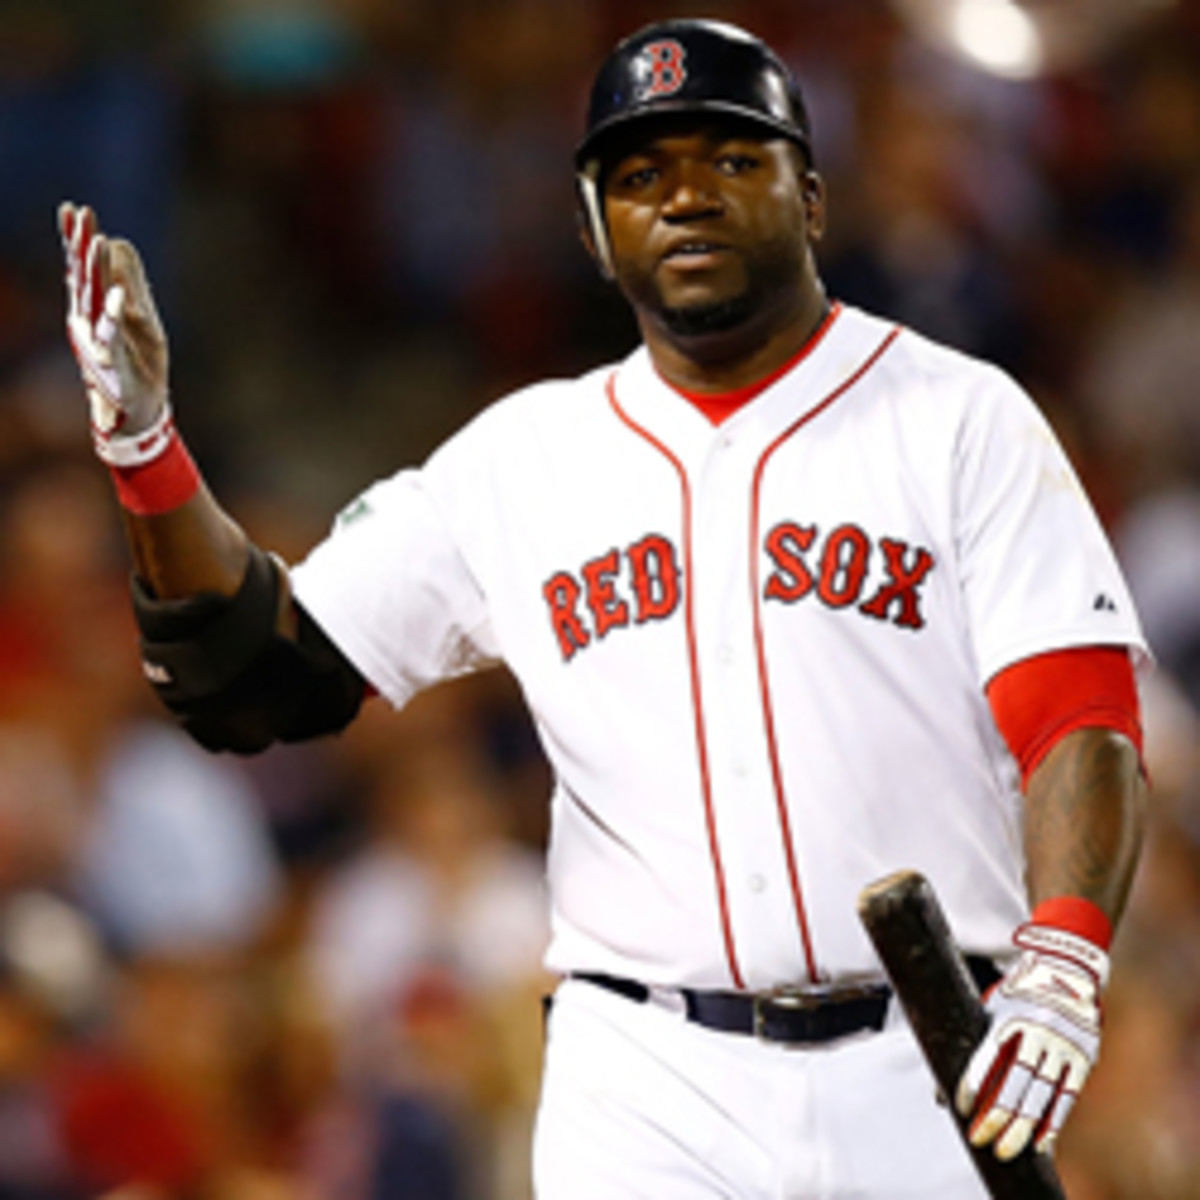 David Ortiz said a recent column questioning whether he has been using steroids is discriminatory. (Jared Wickerham/Getty Images)